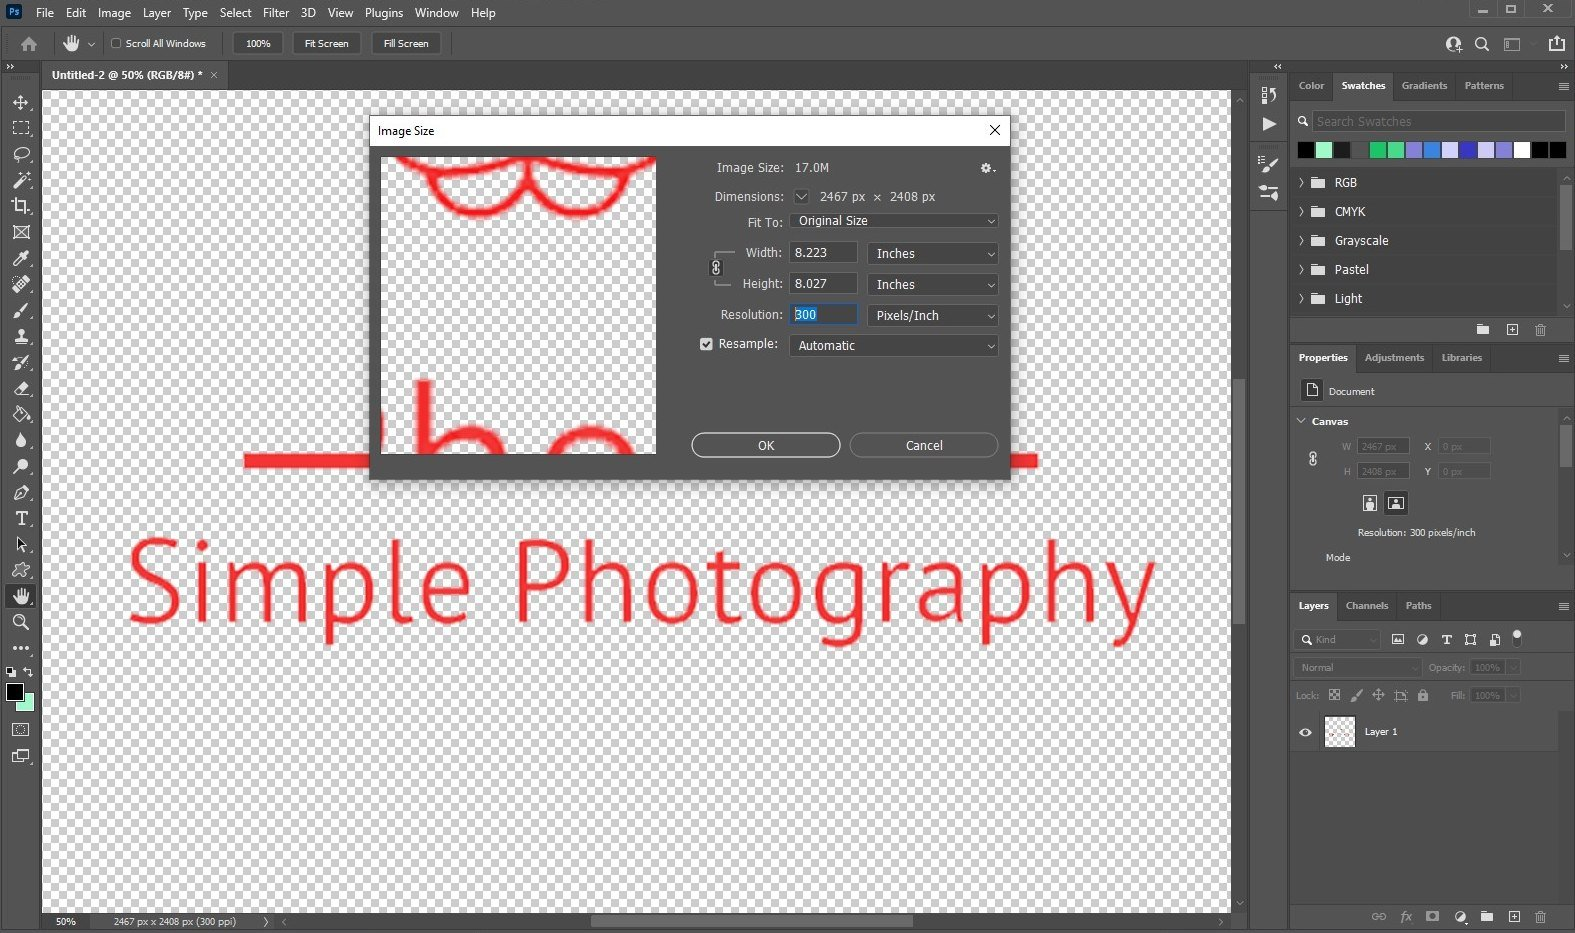 vectorize image in Photoshop - 1